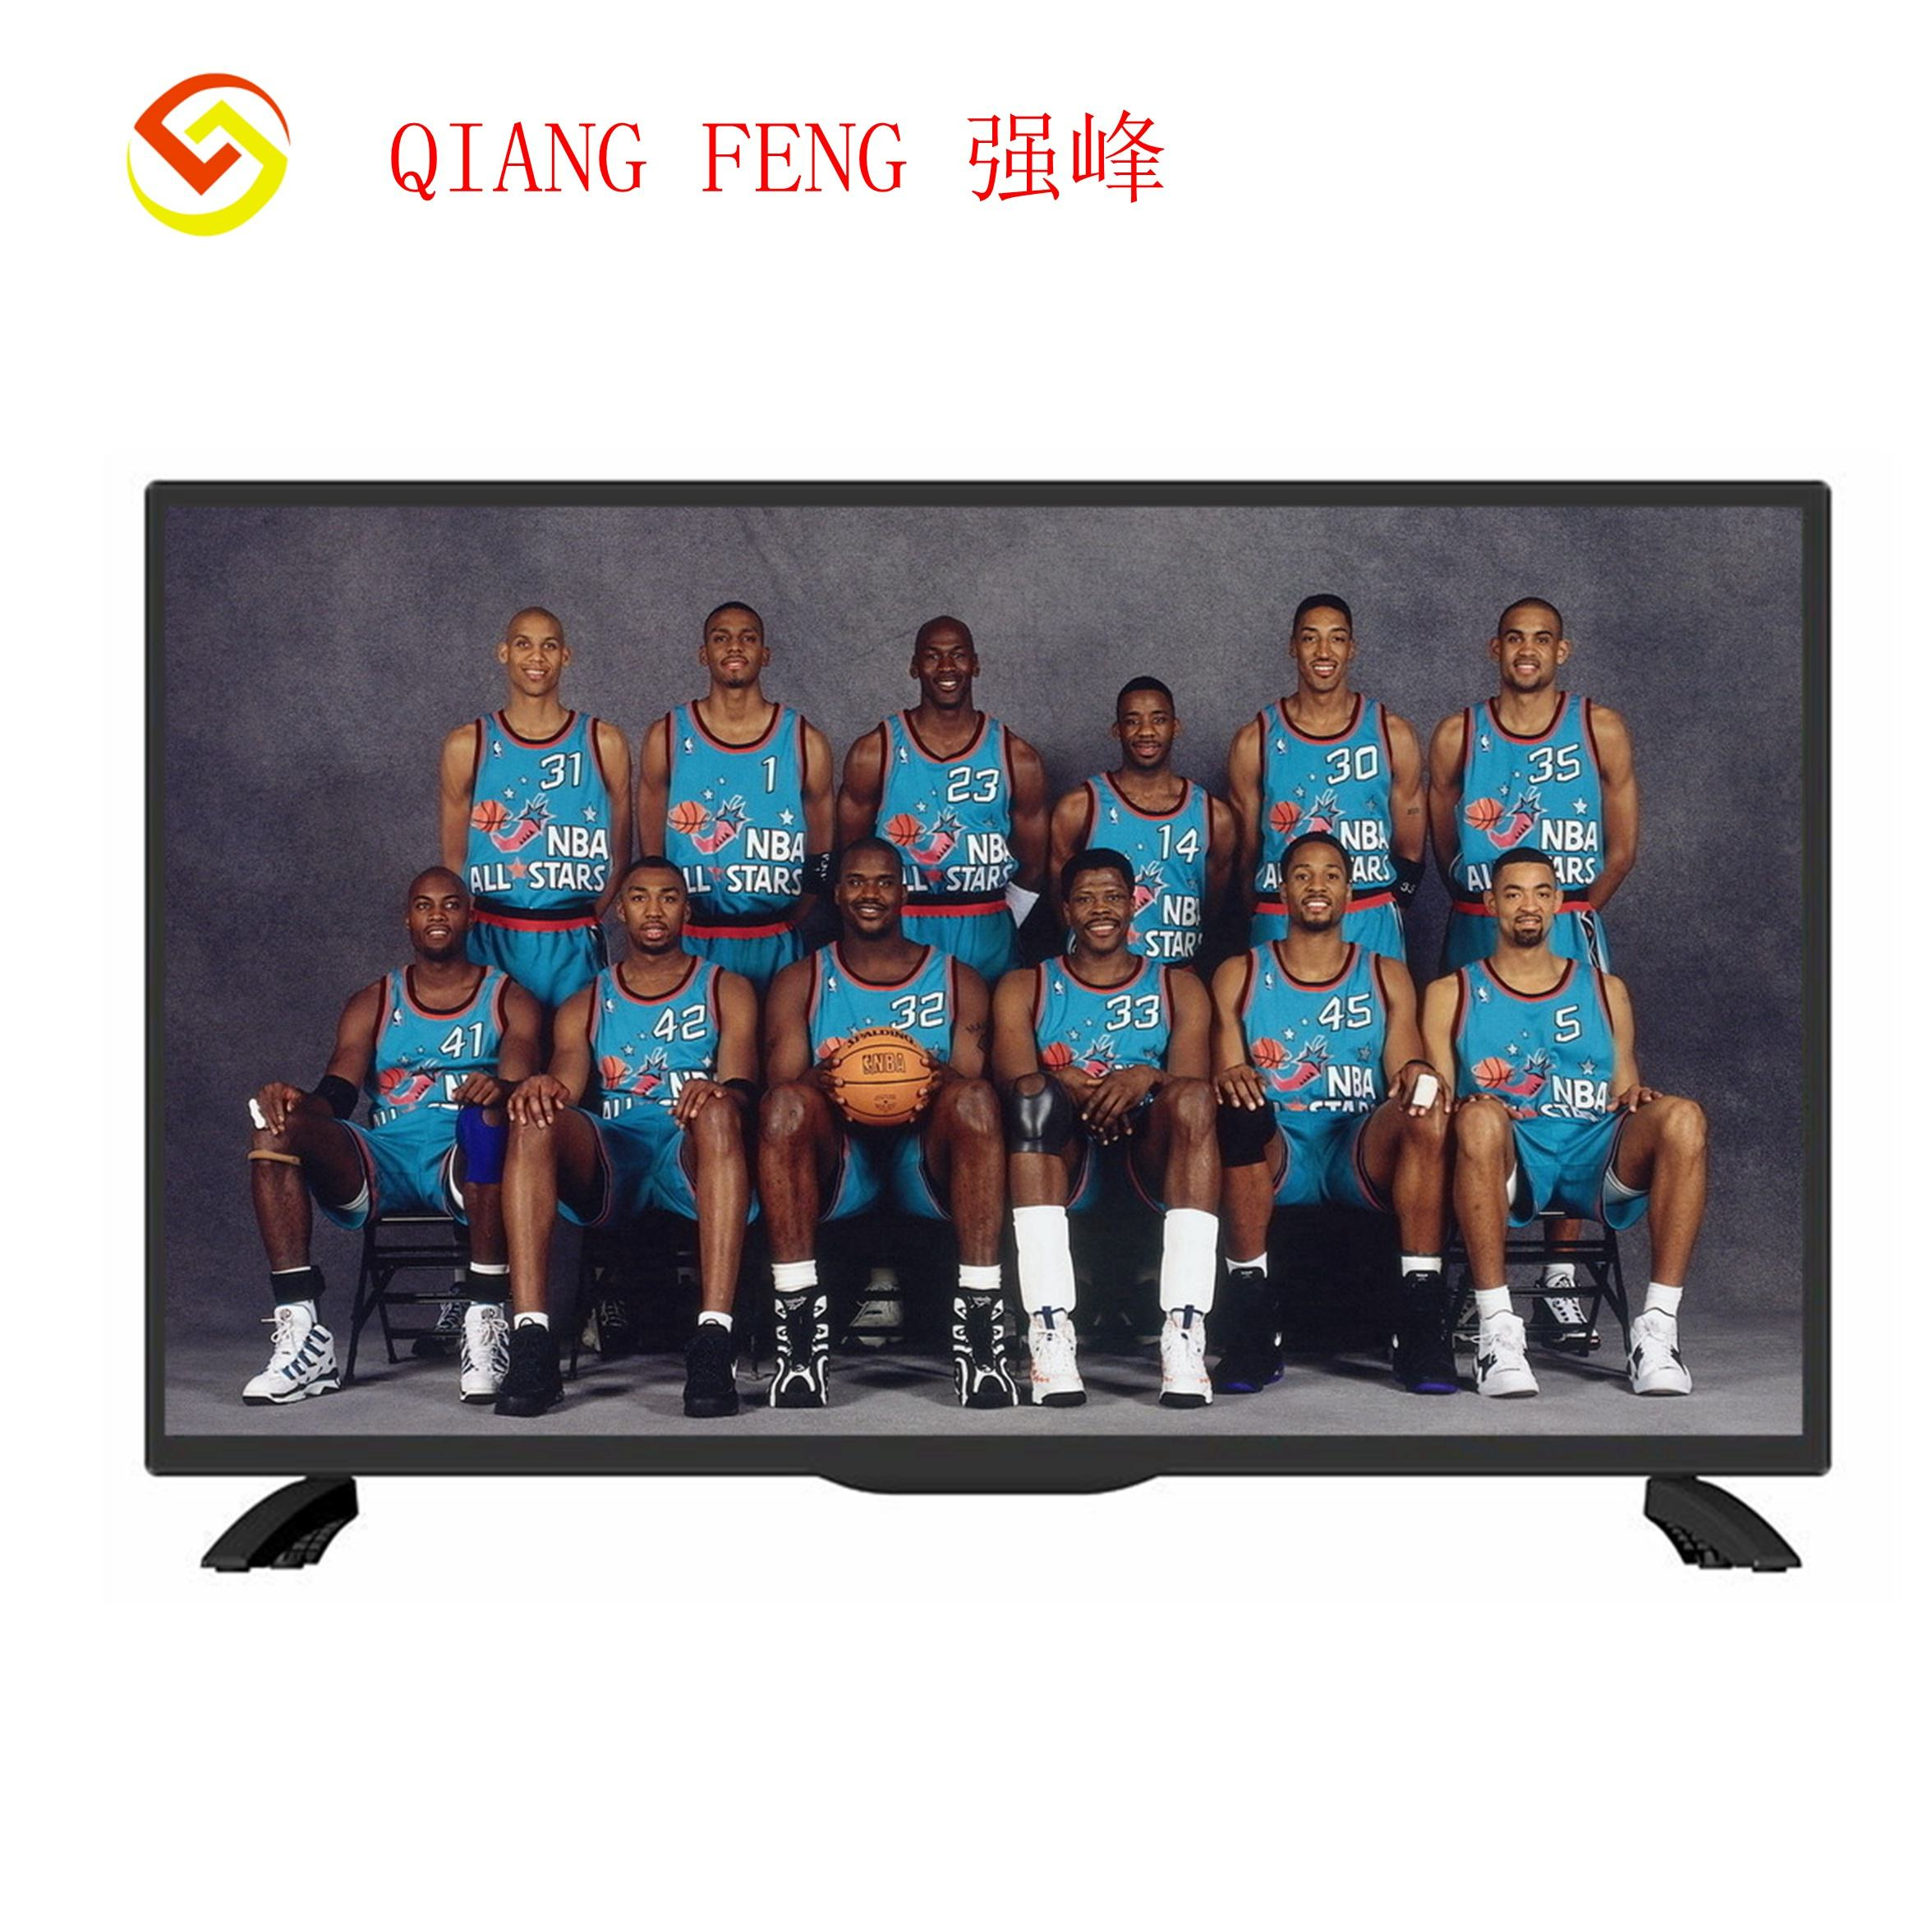 32 Inch LCD SKD CKD TV with Smart Android